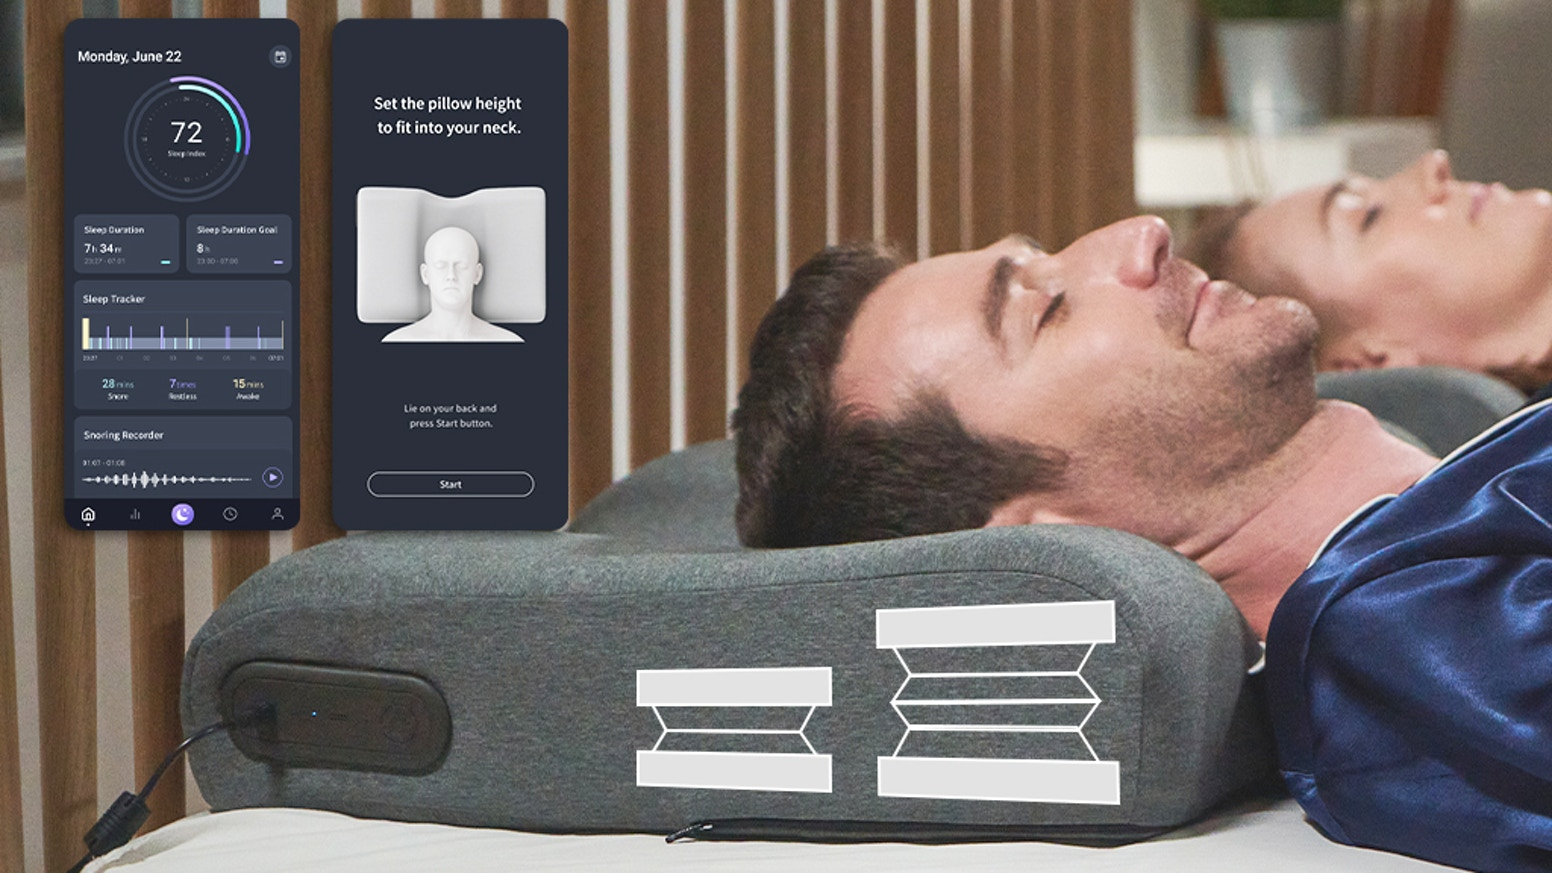 ✔️Detects Snoring ✔️Auto-Height Adjustment ✔️AI-Powered Sleep App ✔️Back & Side Sleepers ✔️Open Cell Memory Foam ✔️Proper Neck Support